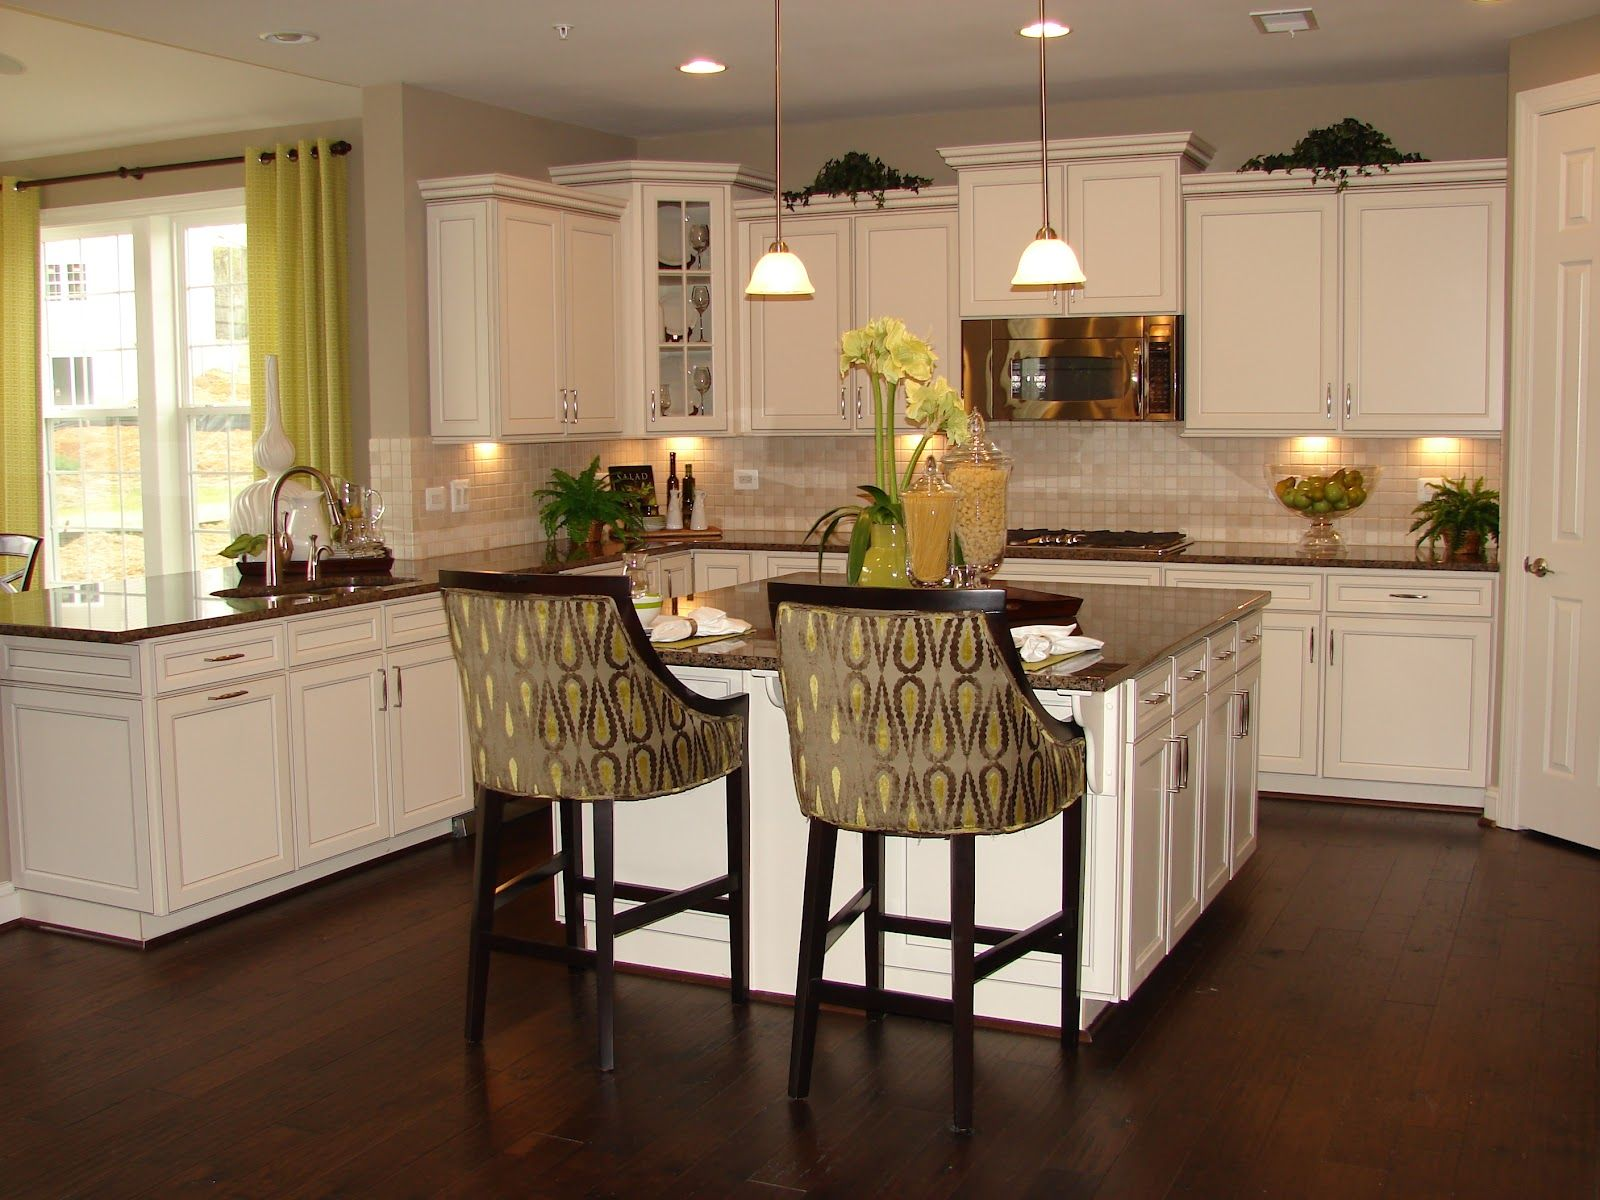 Antique Kitchen Design Pictures Of Kitchens With White Cabinets  This Is My Dream